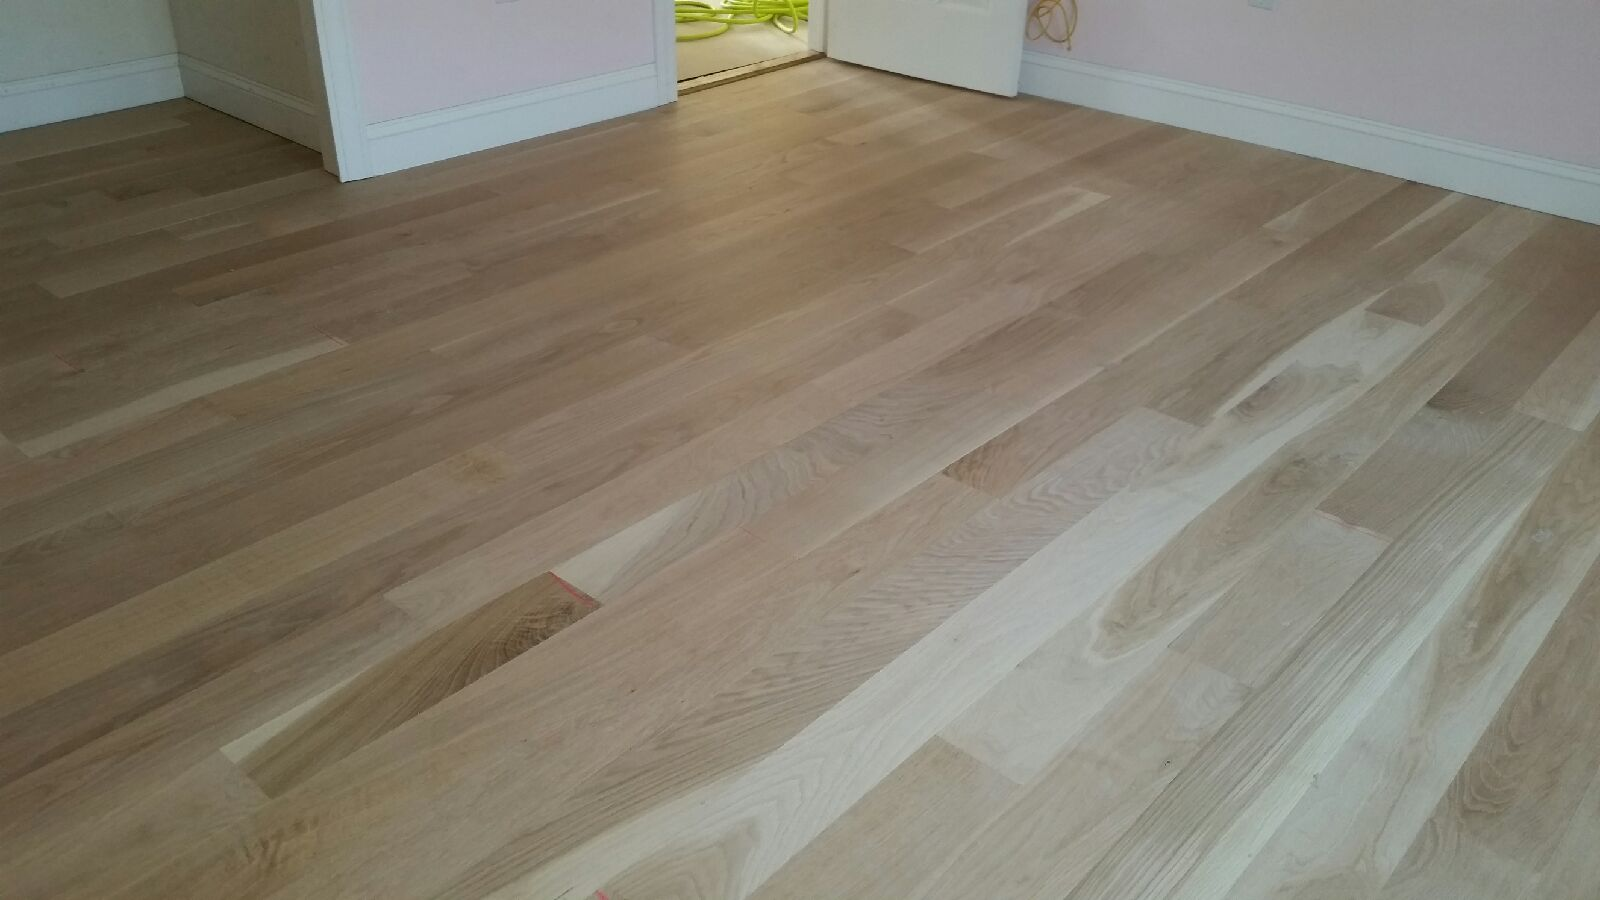 Grades Of Laminate Flooring Image collections